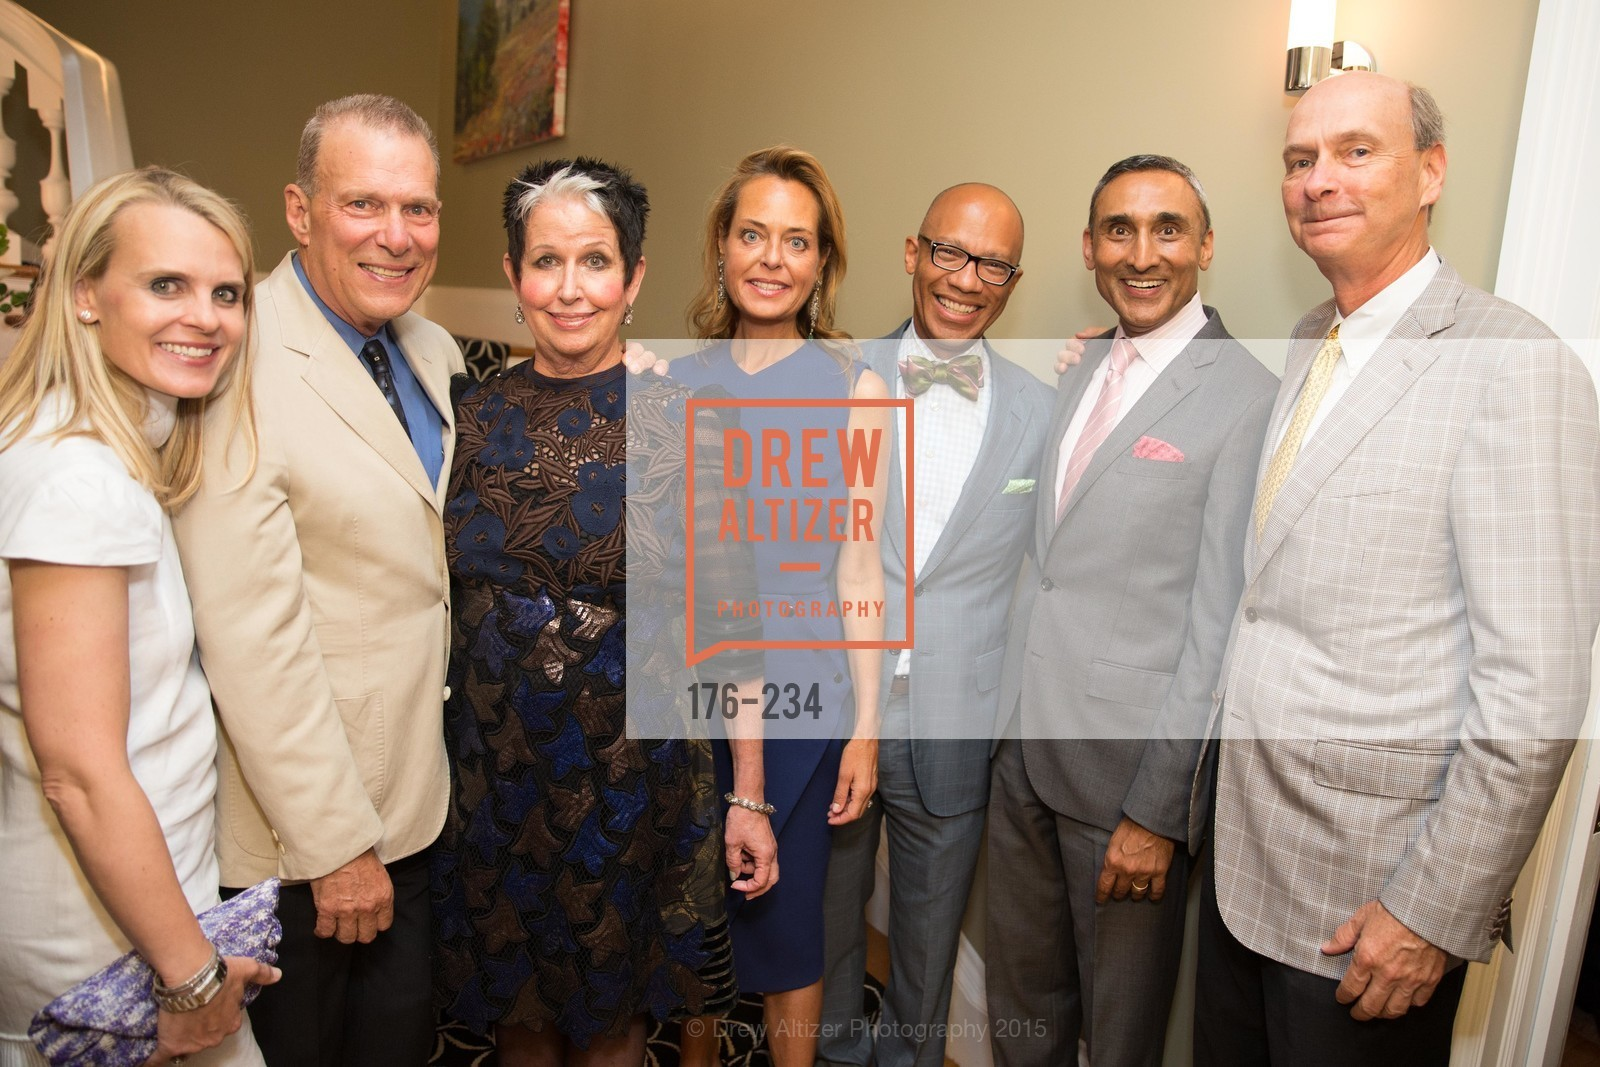 Jane Mudge, David Gockley, Karen Kubin, Charlot Malin, Ken McNeely, Inder Dhillon, Keith Geeslin, San Francisco Opera Ball 2015 Patron Party, Private Residence, August 19th, 2015,Drew Altizer, Drew Altizer Photography, full-service agency, private events, San Francisco photographer, photographer california